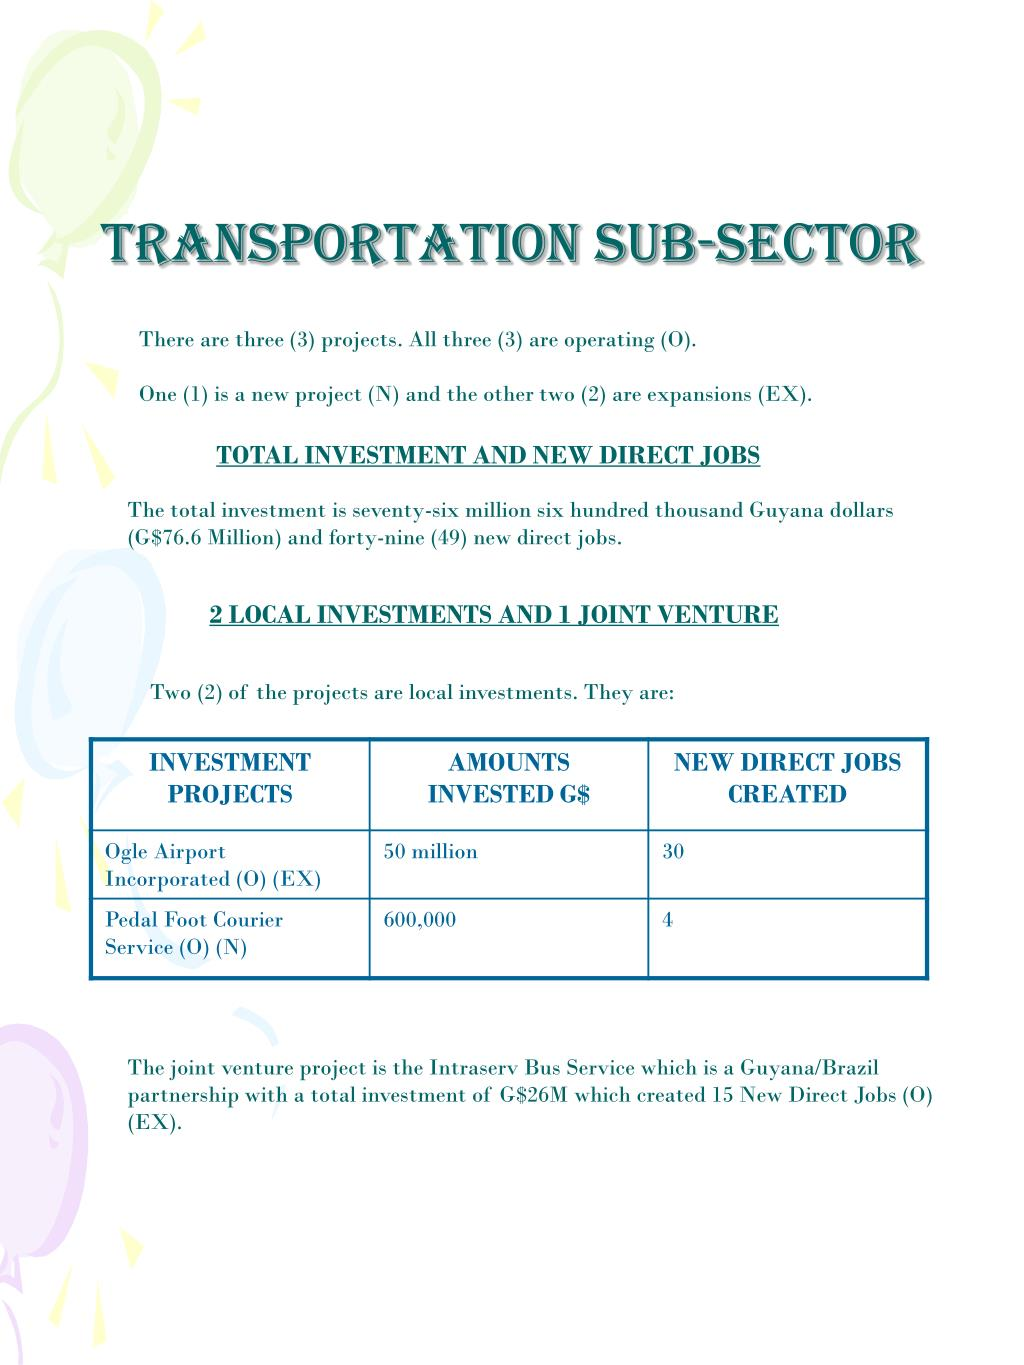 TRANSPORTATION SUB-SECTOR